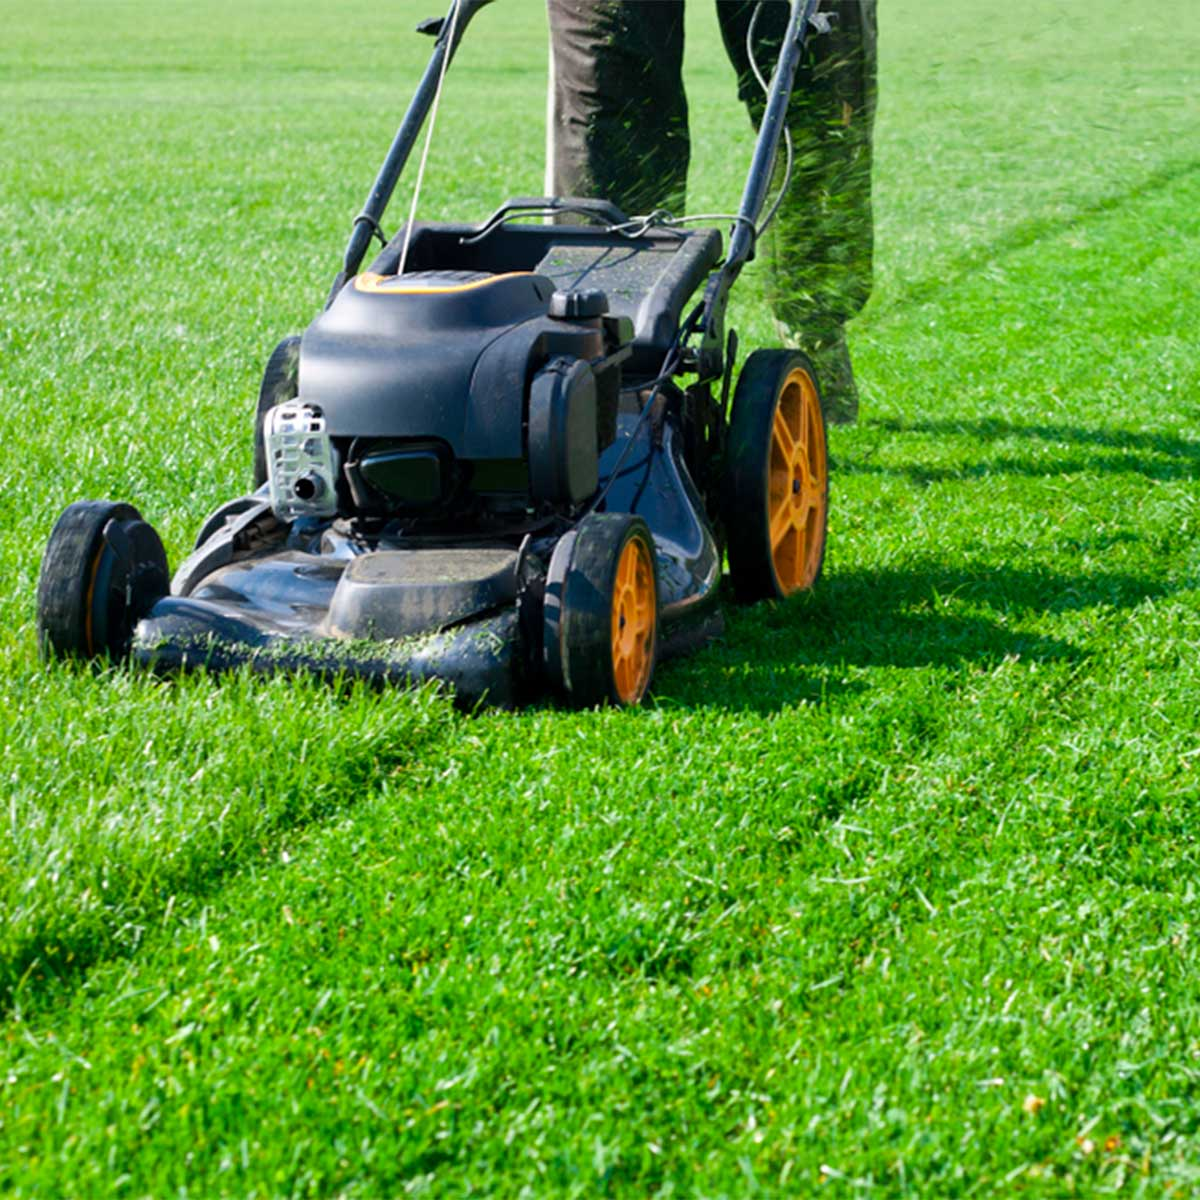 Could Mowing Your Lawn Cause Environmental Damage?